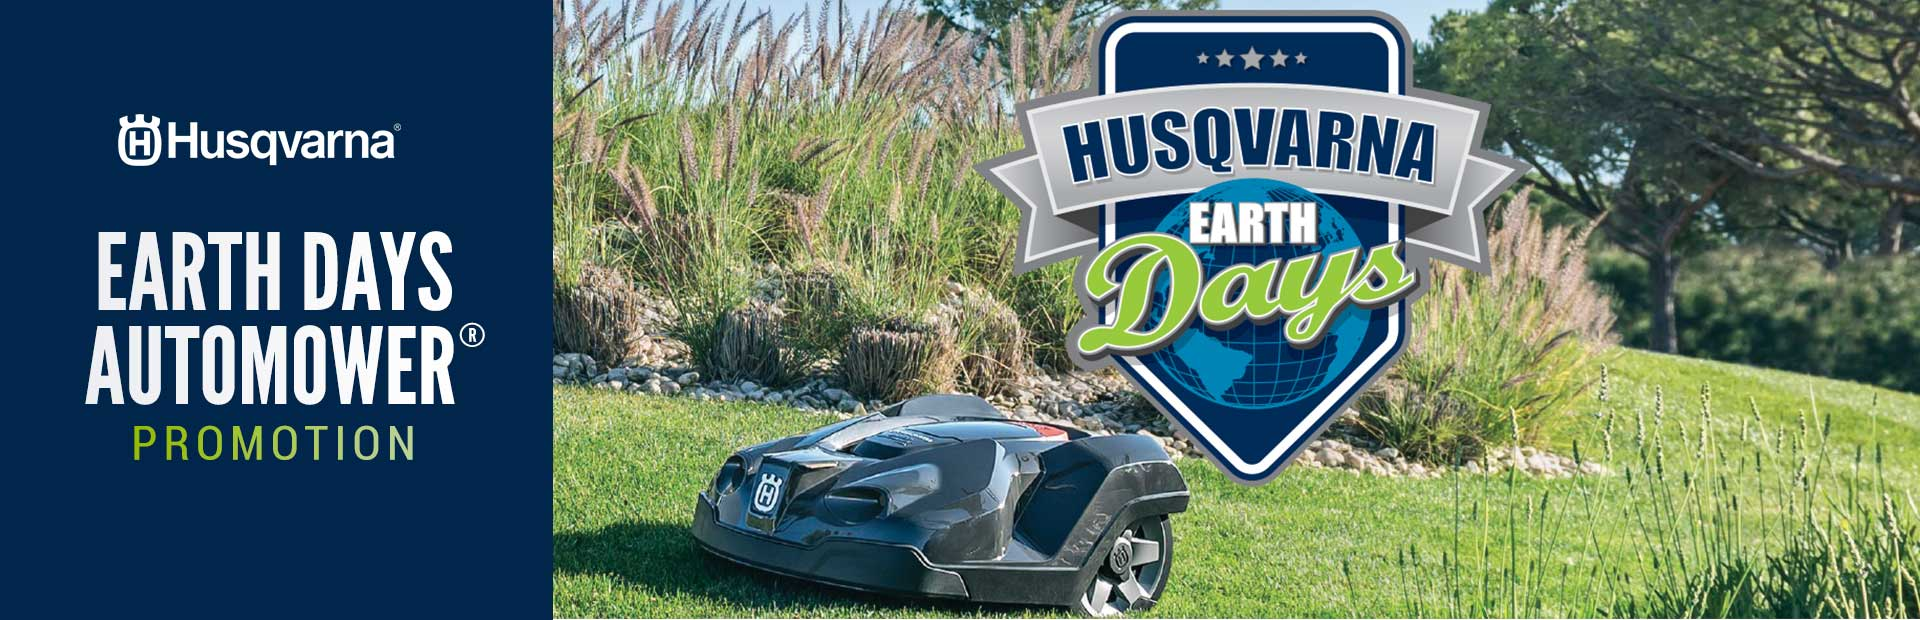 Husqvarna: Earth Days Automower® Promo